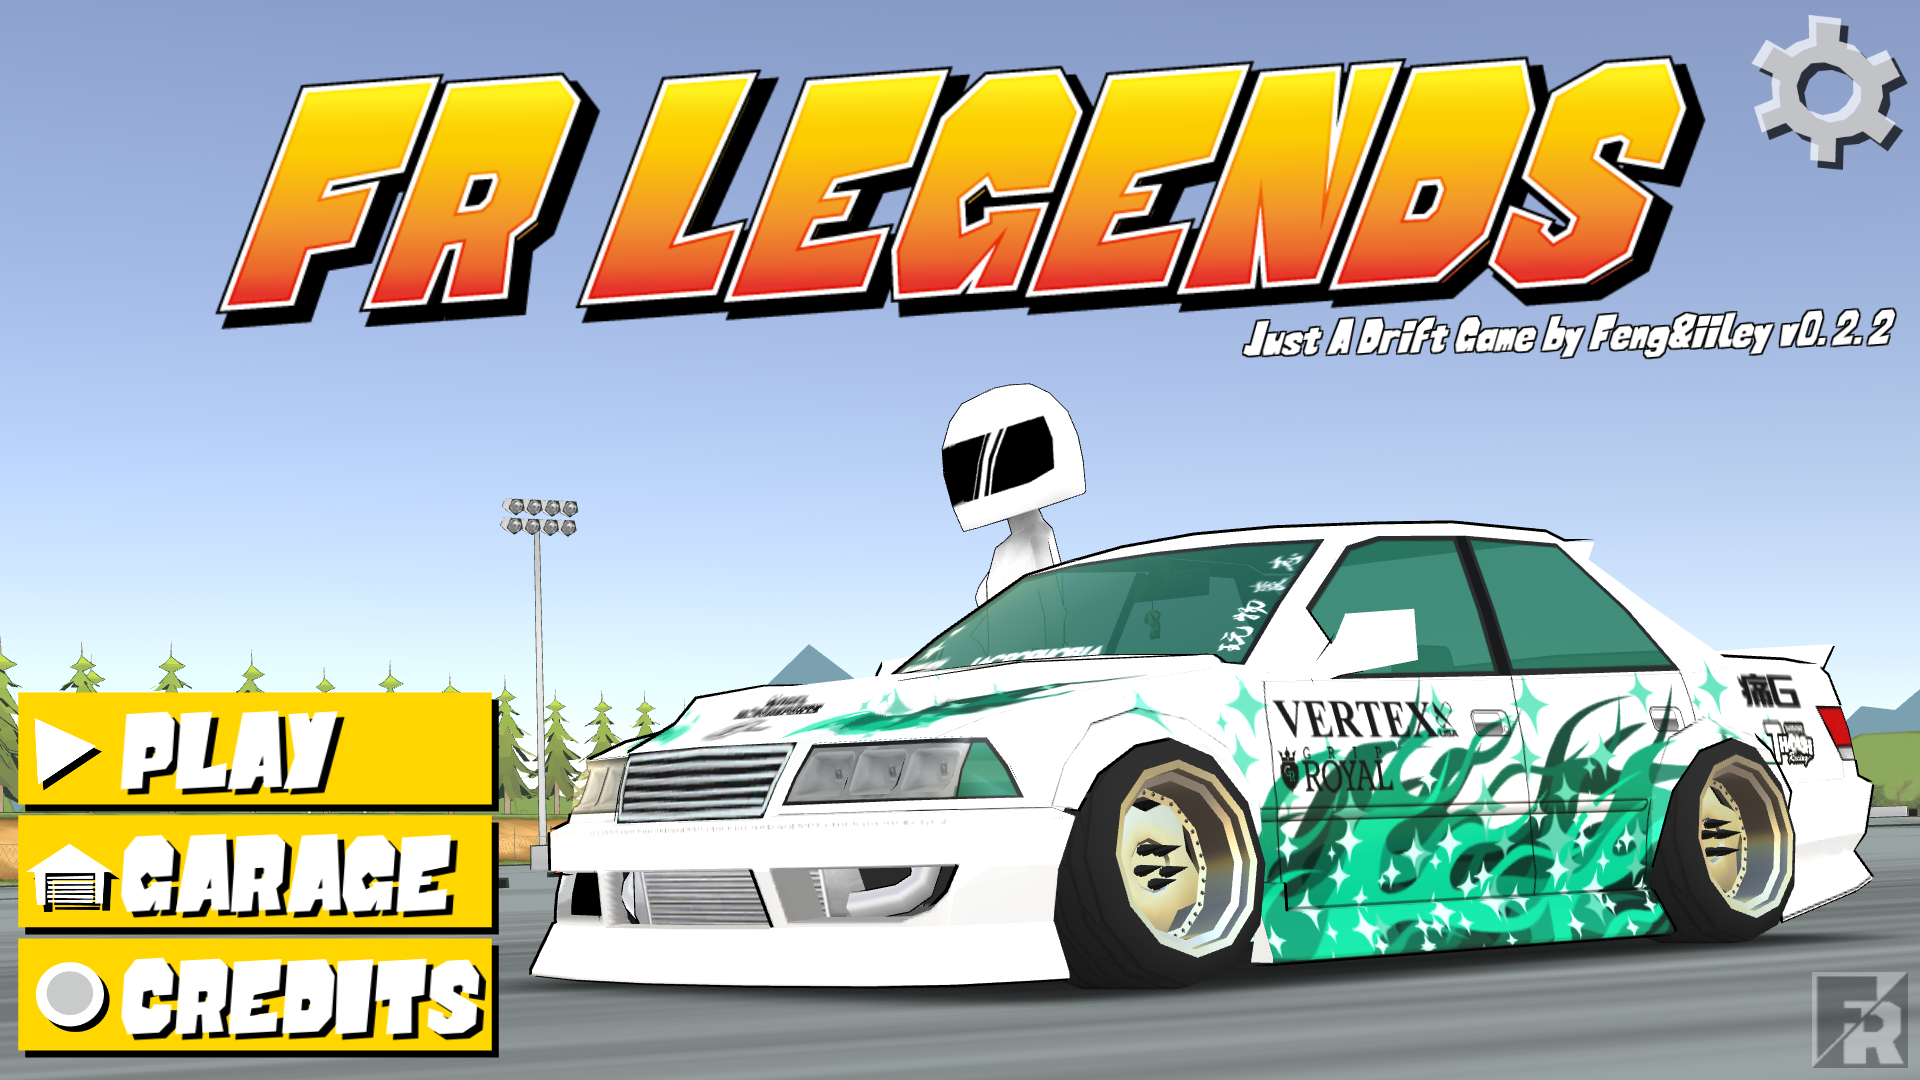 Code Livery Fr Legends, Skin Mobil Fr Legends, Kumpulan Livery Fr Legends